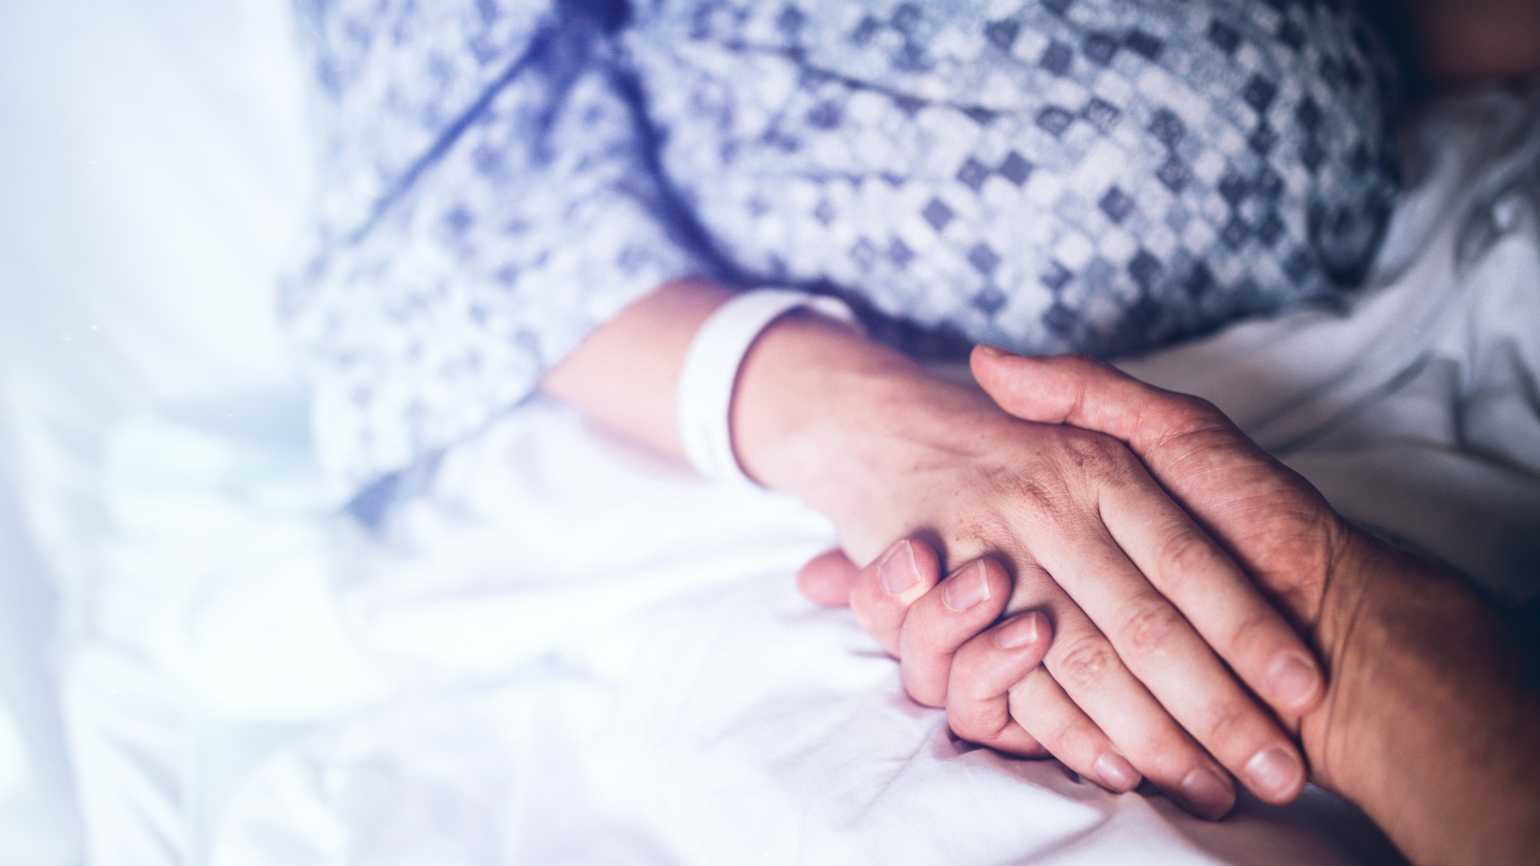 5 Prayers for Surgery from Norman Vincent Peale